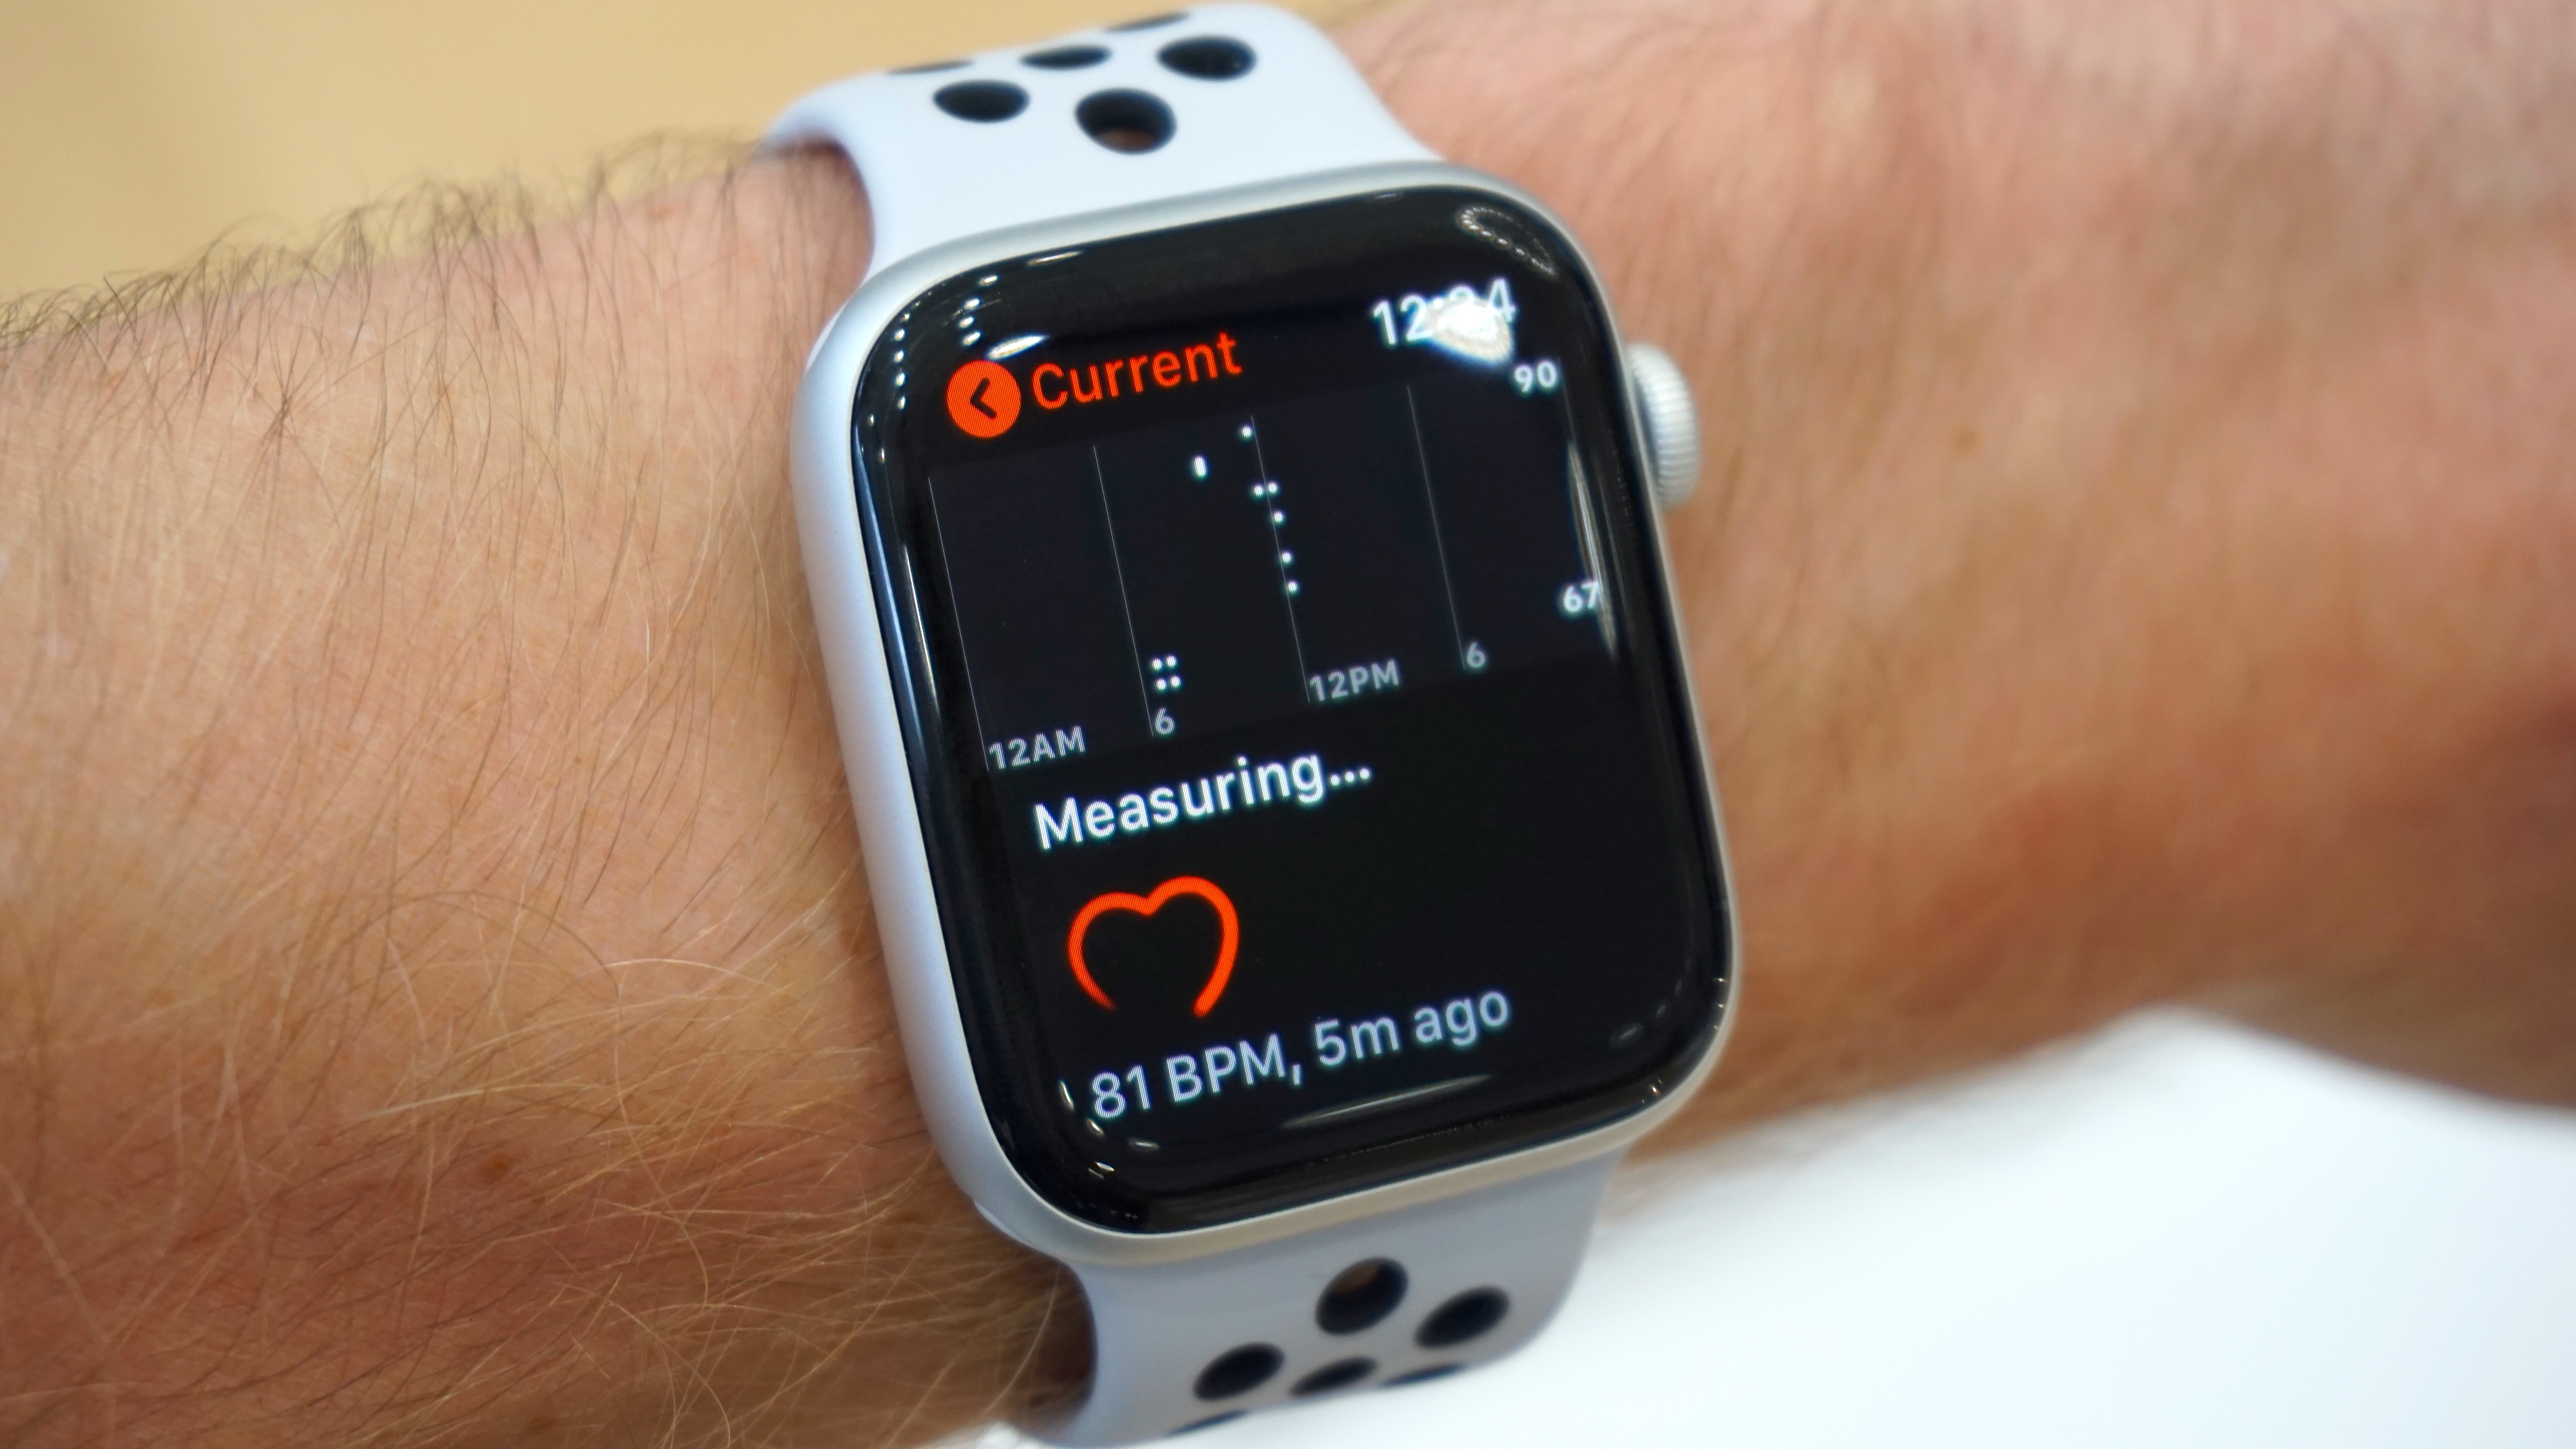 The Apple Watch 4 ECG is 98% accurate at detecting AFib, says study the-apple-watch-4-ecg-is-98-accurate-at-detecting-afib-says-study